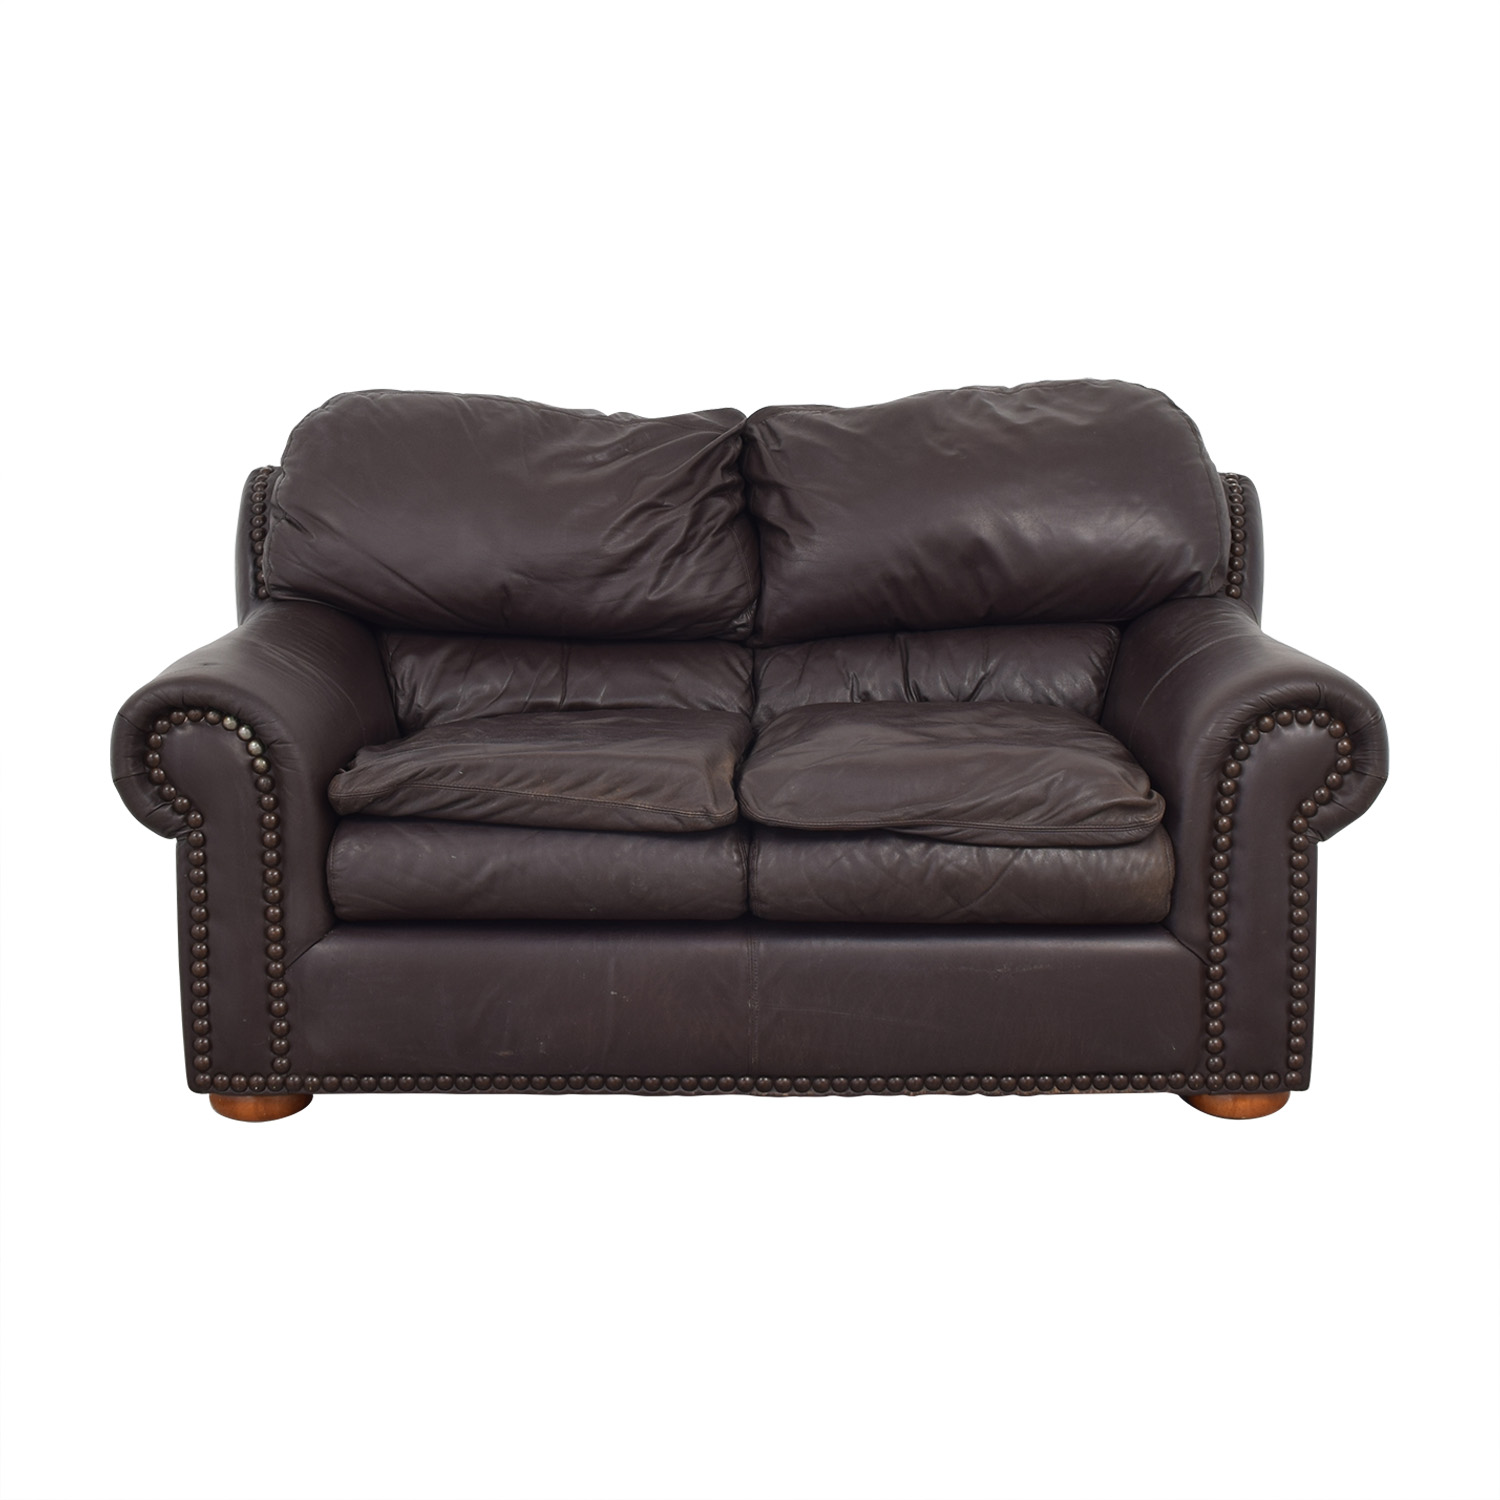 buy  Viewpoint Nailhead Trim Loveseat online